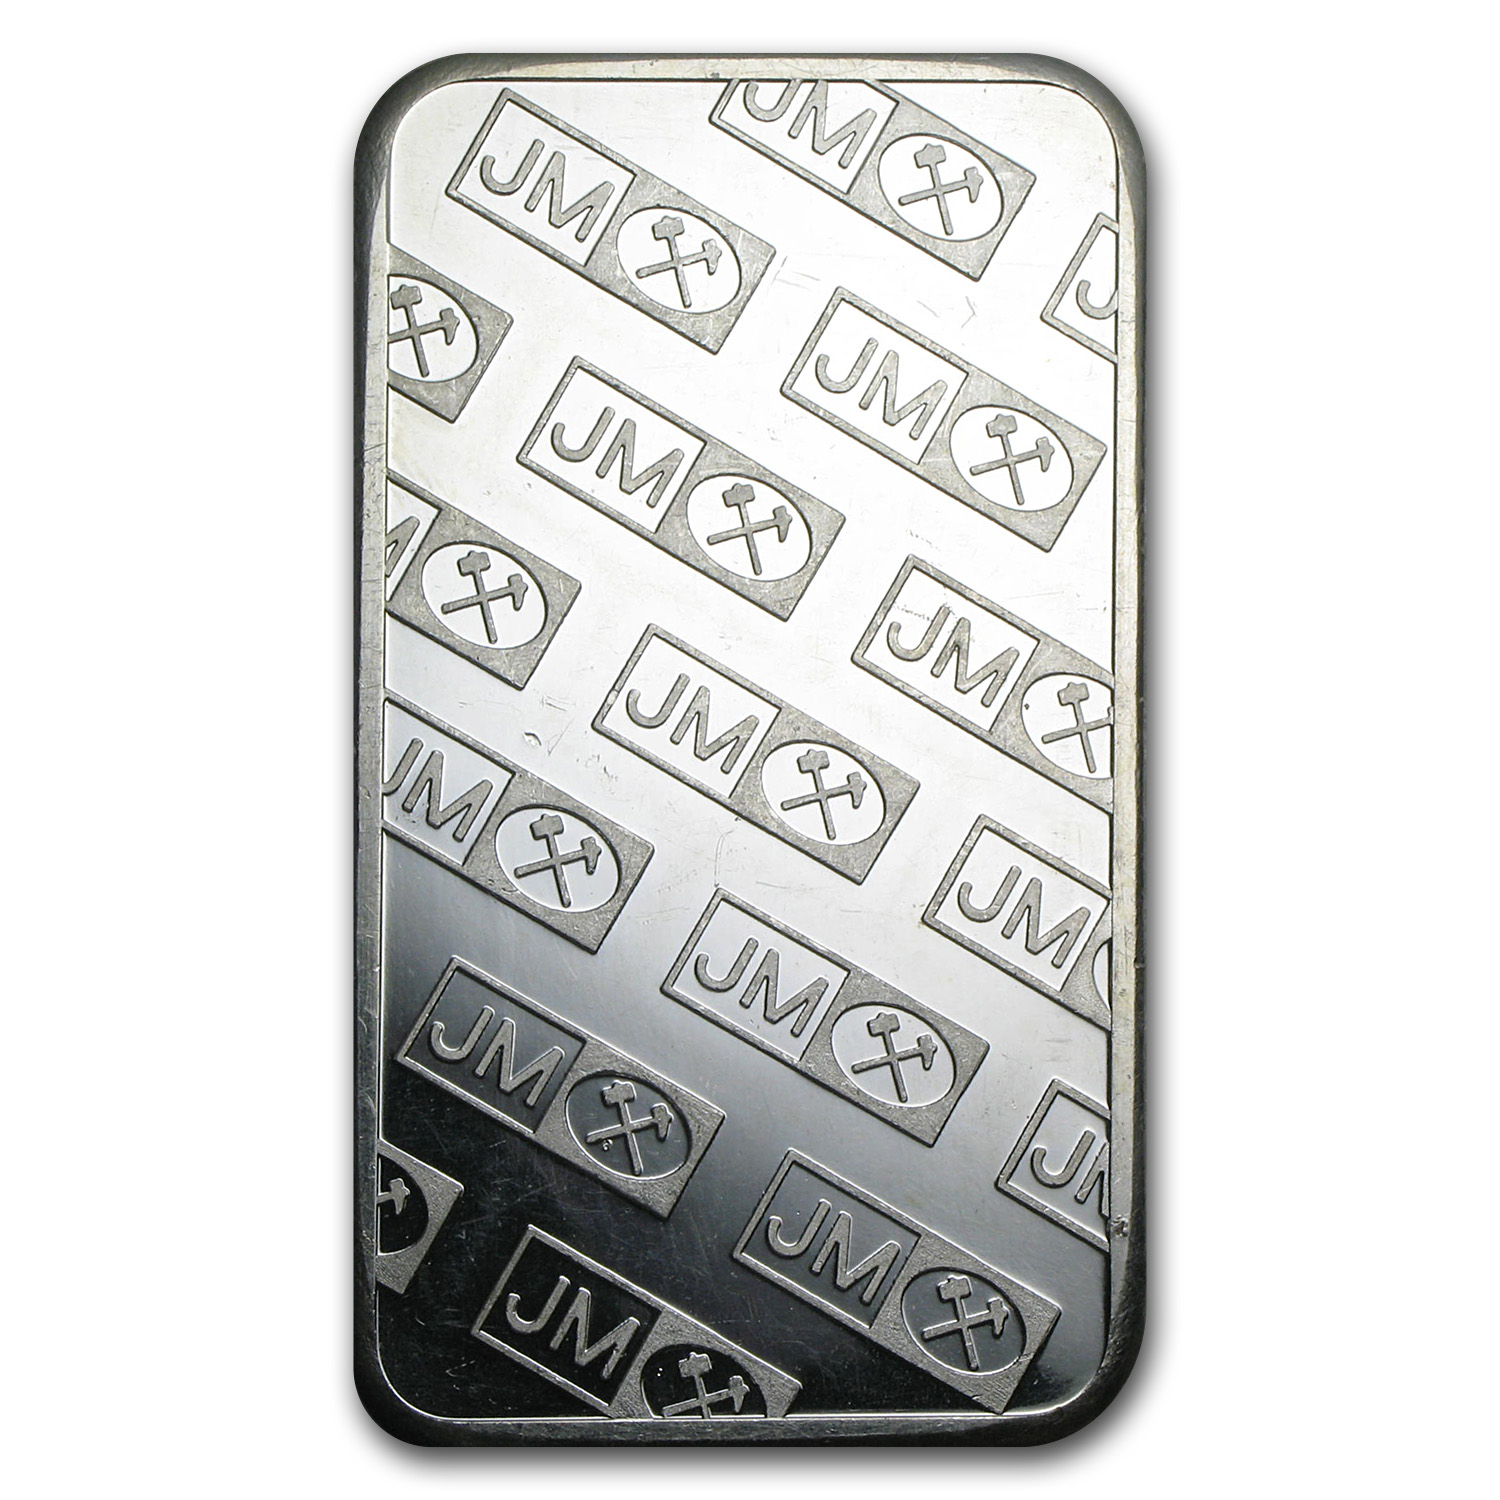 5 oz Silver Bars - Johnson Matthey (Pressed/JM logo)